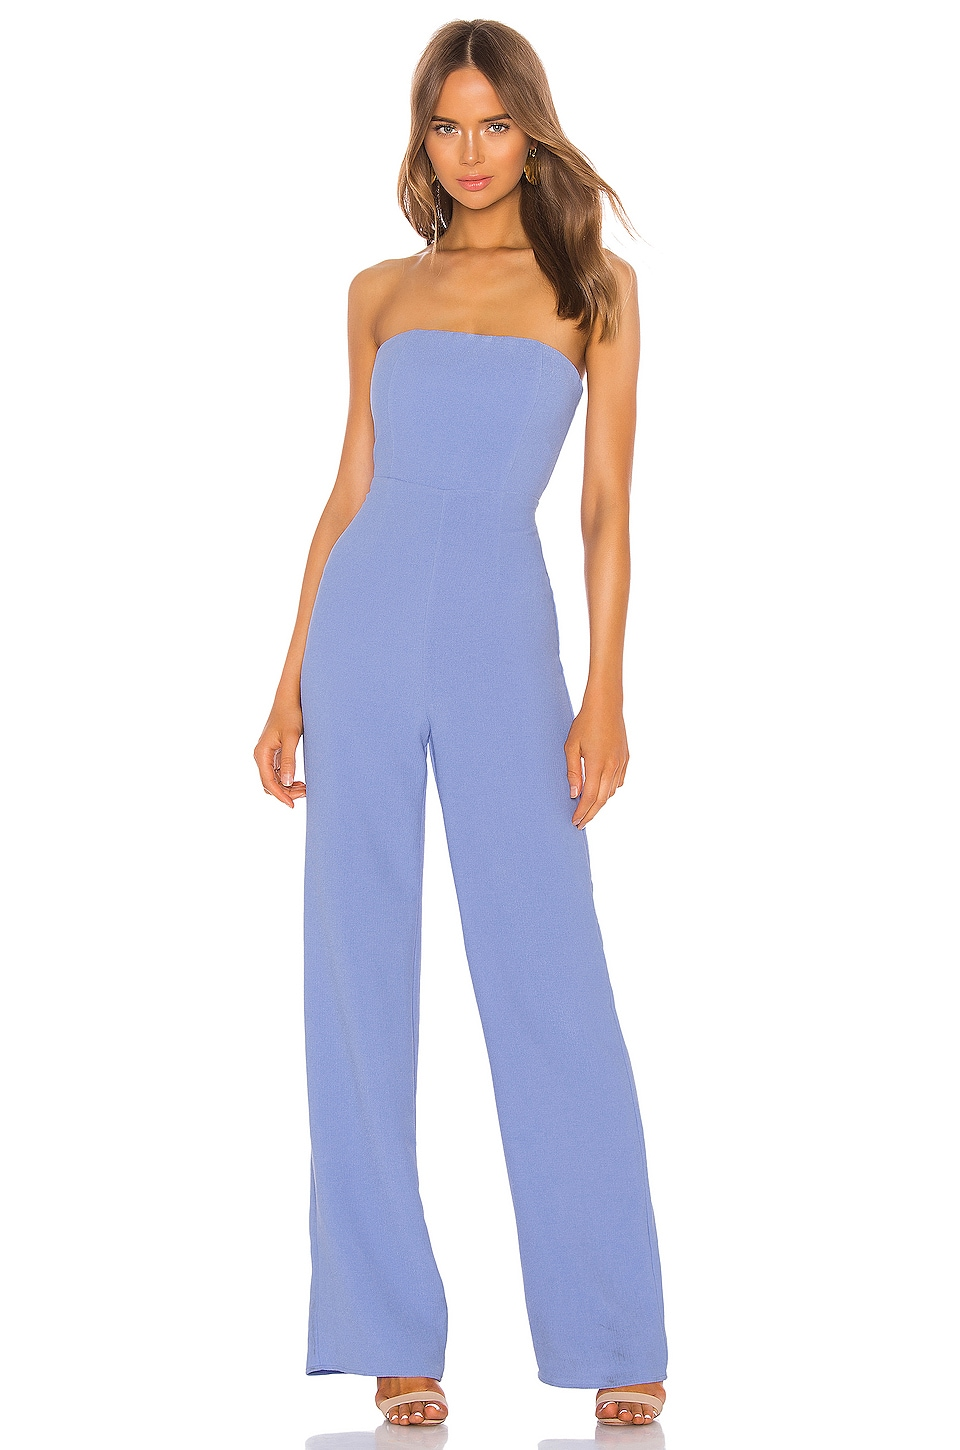 NBD Ivy Jumpsuit in Periwinkle Blue